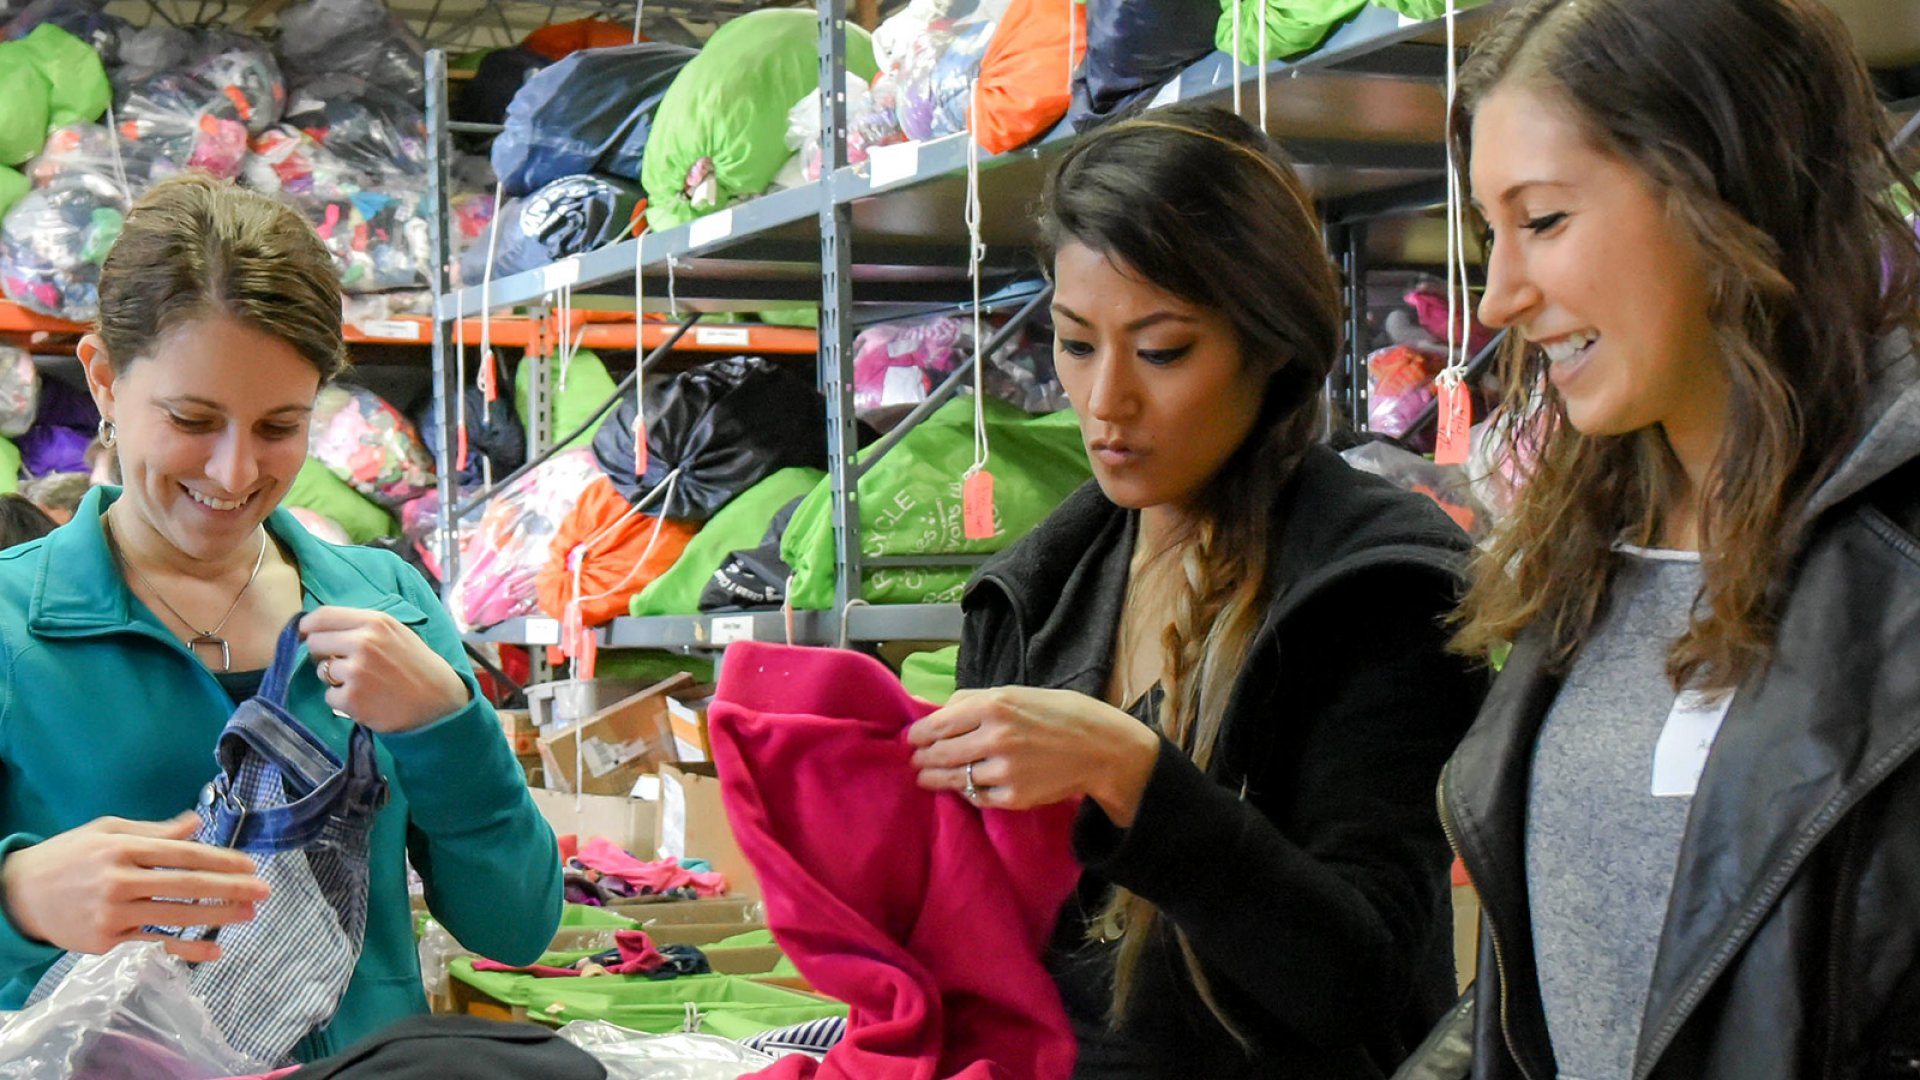 """As part of the """"Evolve Cares"""" program, Delinda Tinkey, Katherine Frank and Andrea Cascino sort clothes at Cradles To Crayons, an organization providing the children of low-income families with essential needs for home, school, and play."""